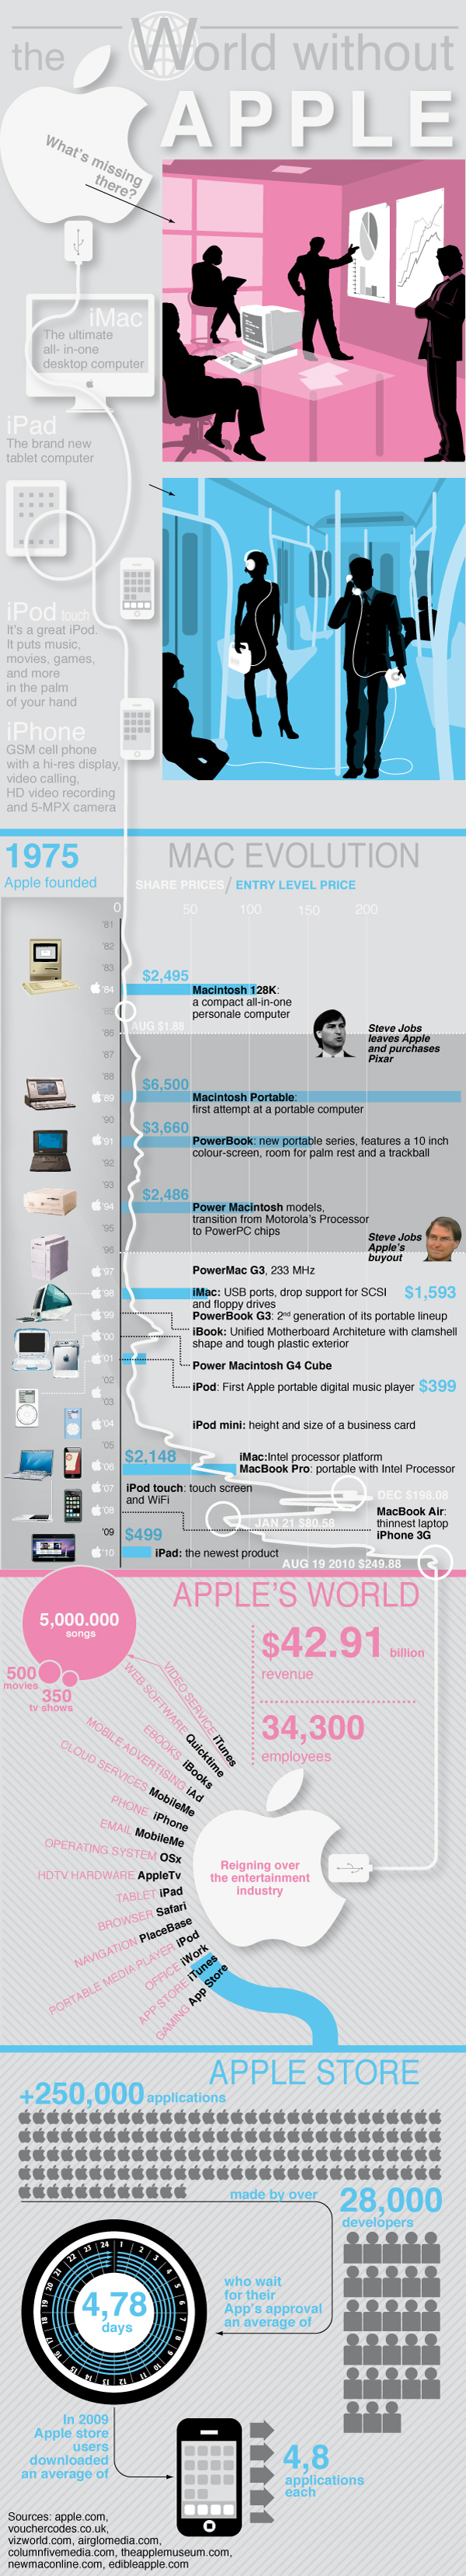 World Without Apple Infographic from Infographic Labs